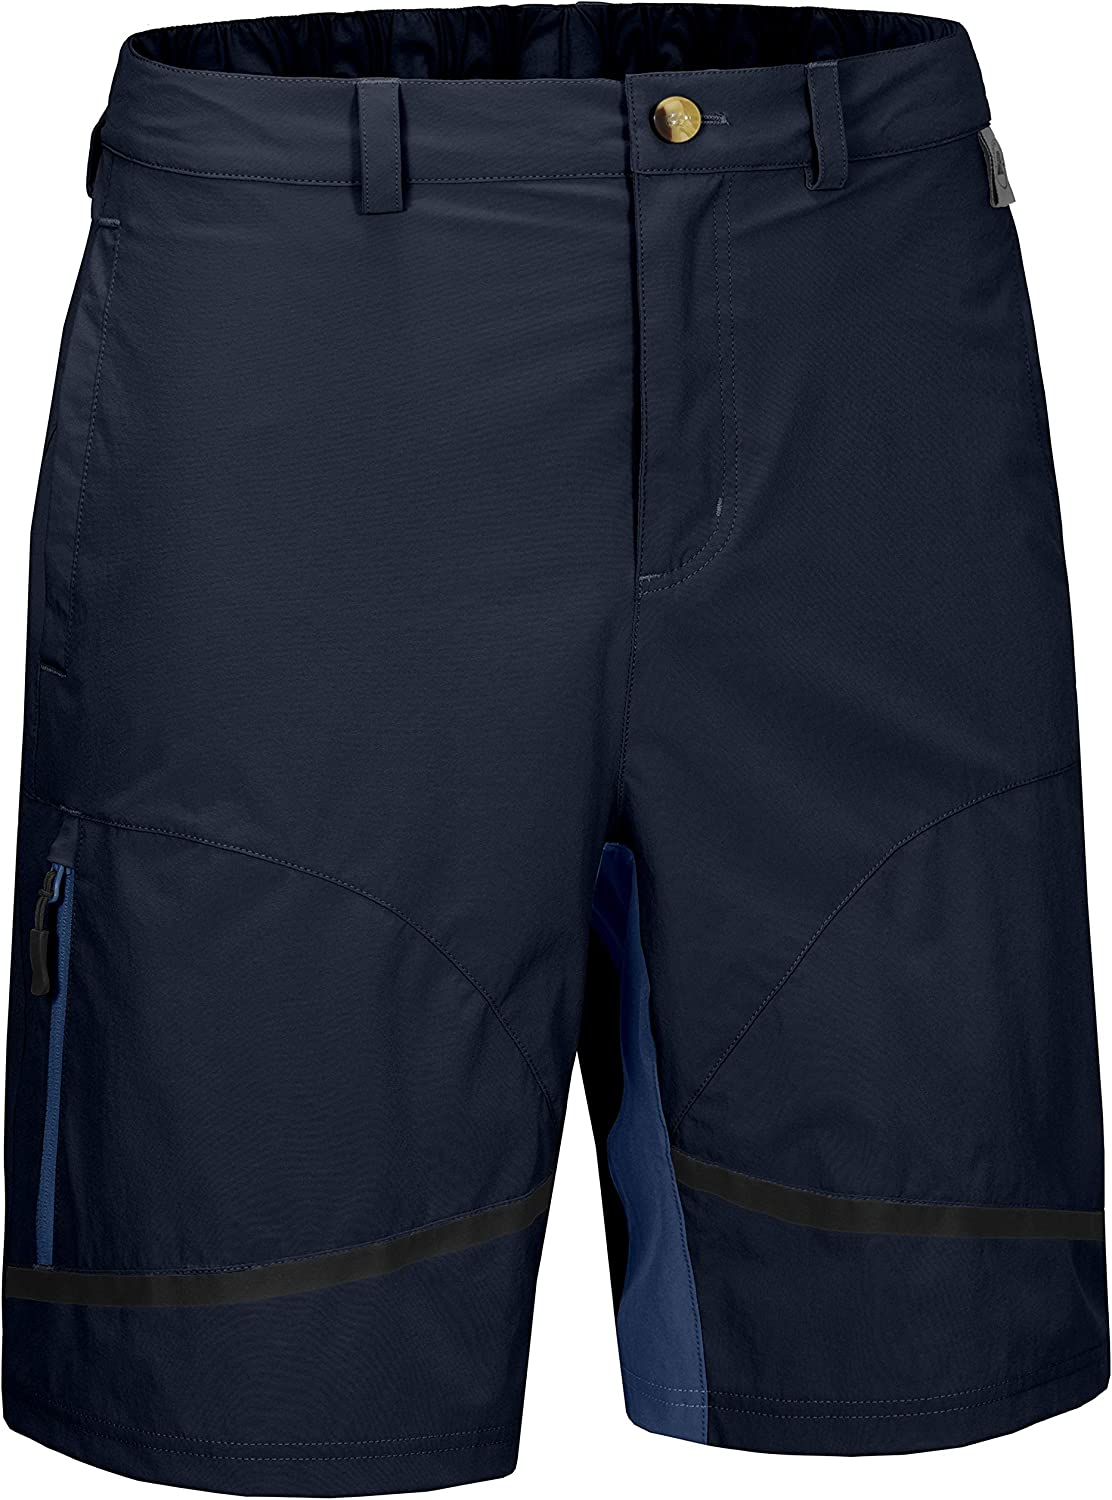 Mapamyumco Men's Breathable Quick Choice Dry Shorts Hiking for Max 59% OFF Stretch